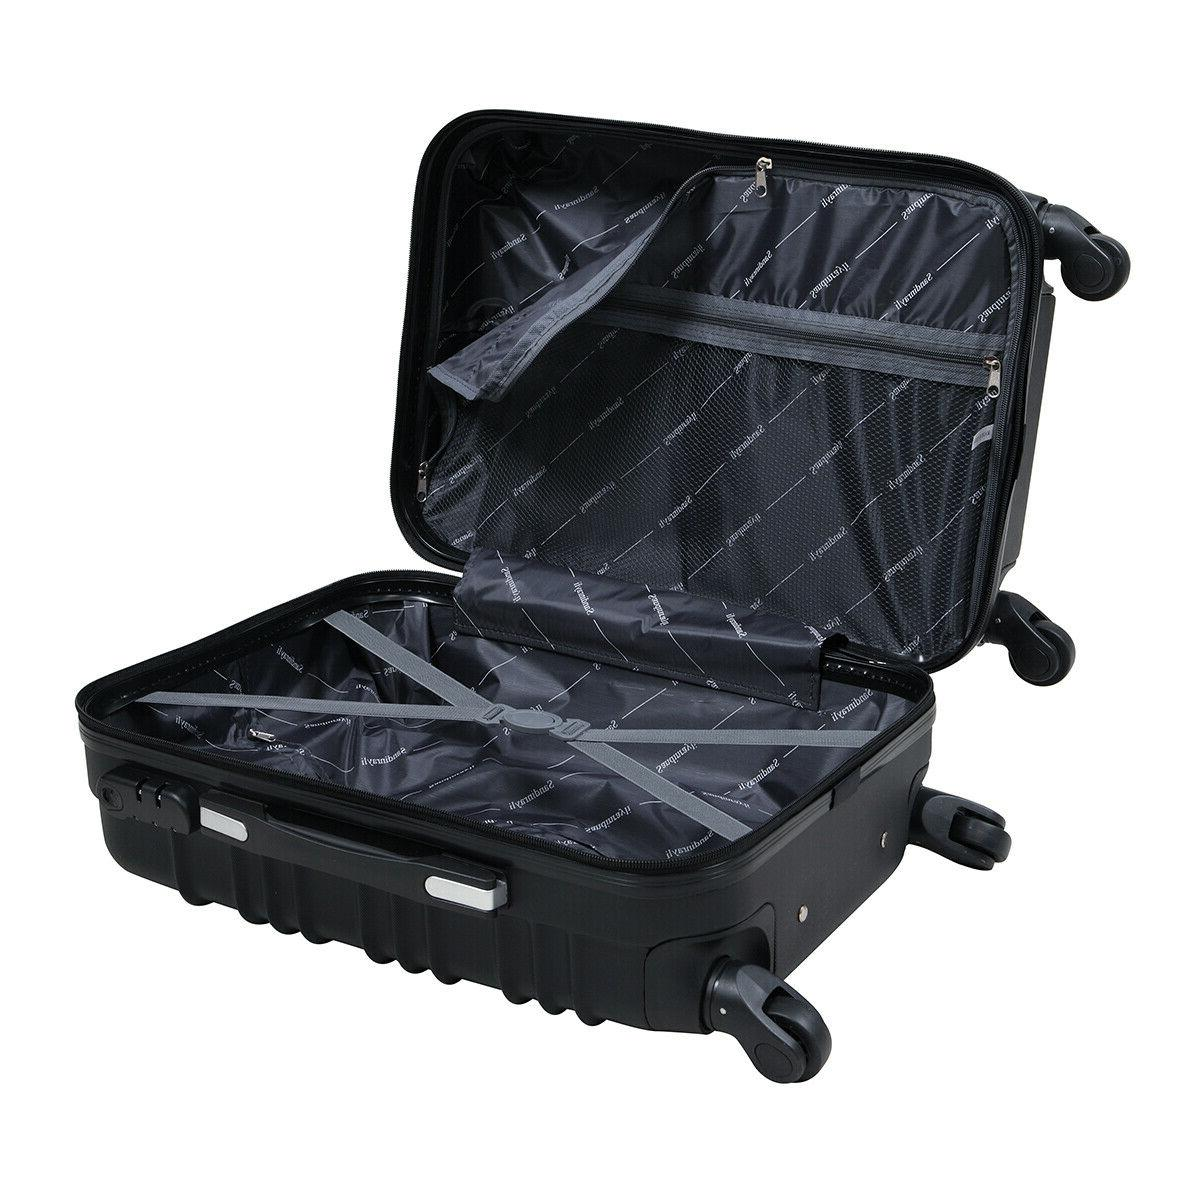 "20"" ABS Luggage Travel Trolley Suitcase Black"